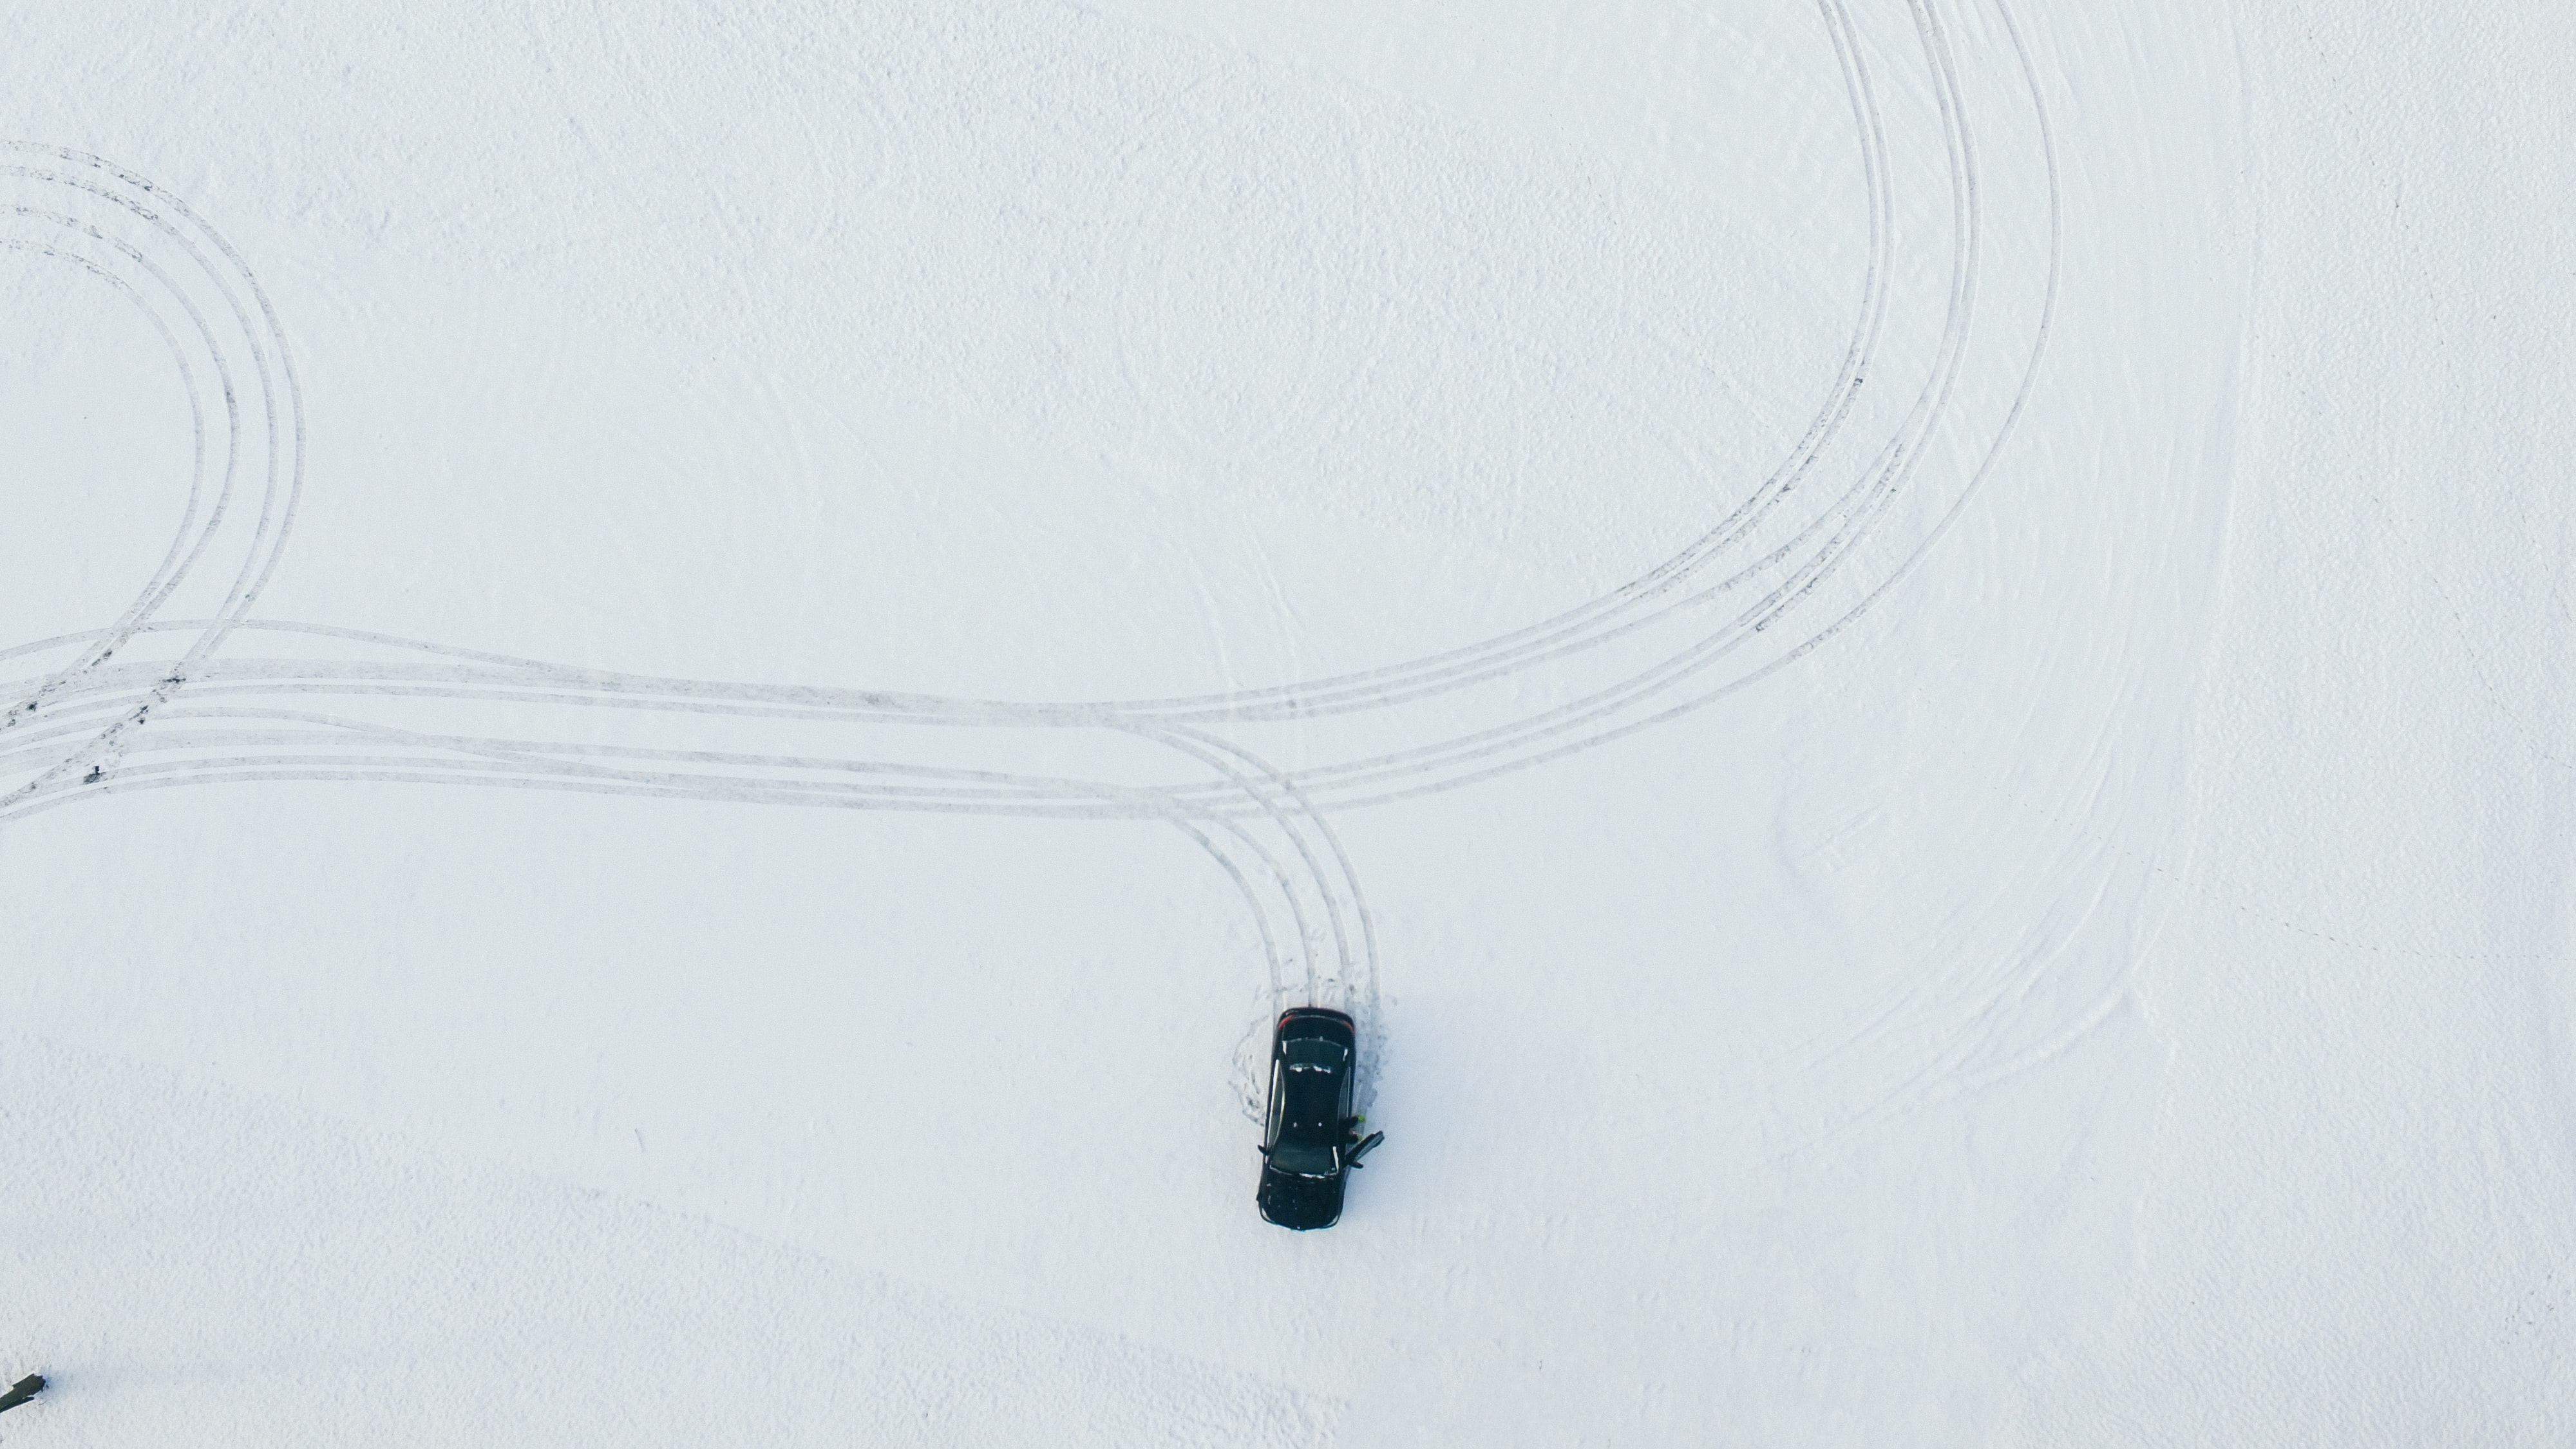 A drone shot of a car leaving tire marks in the snow